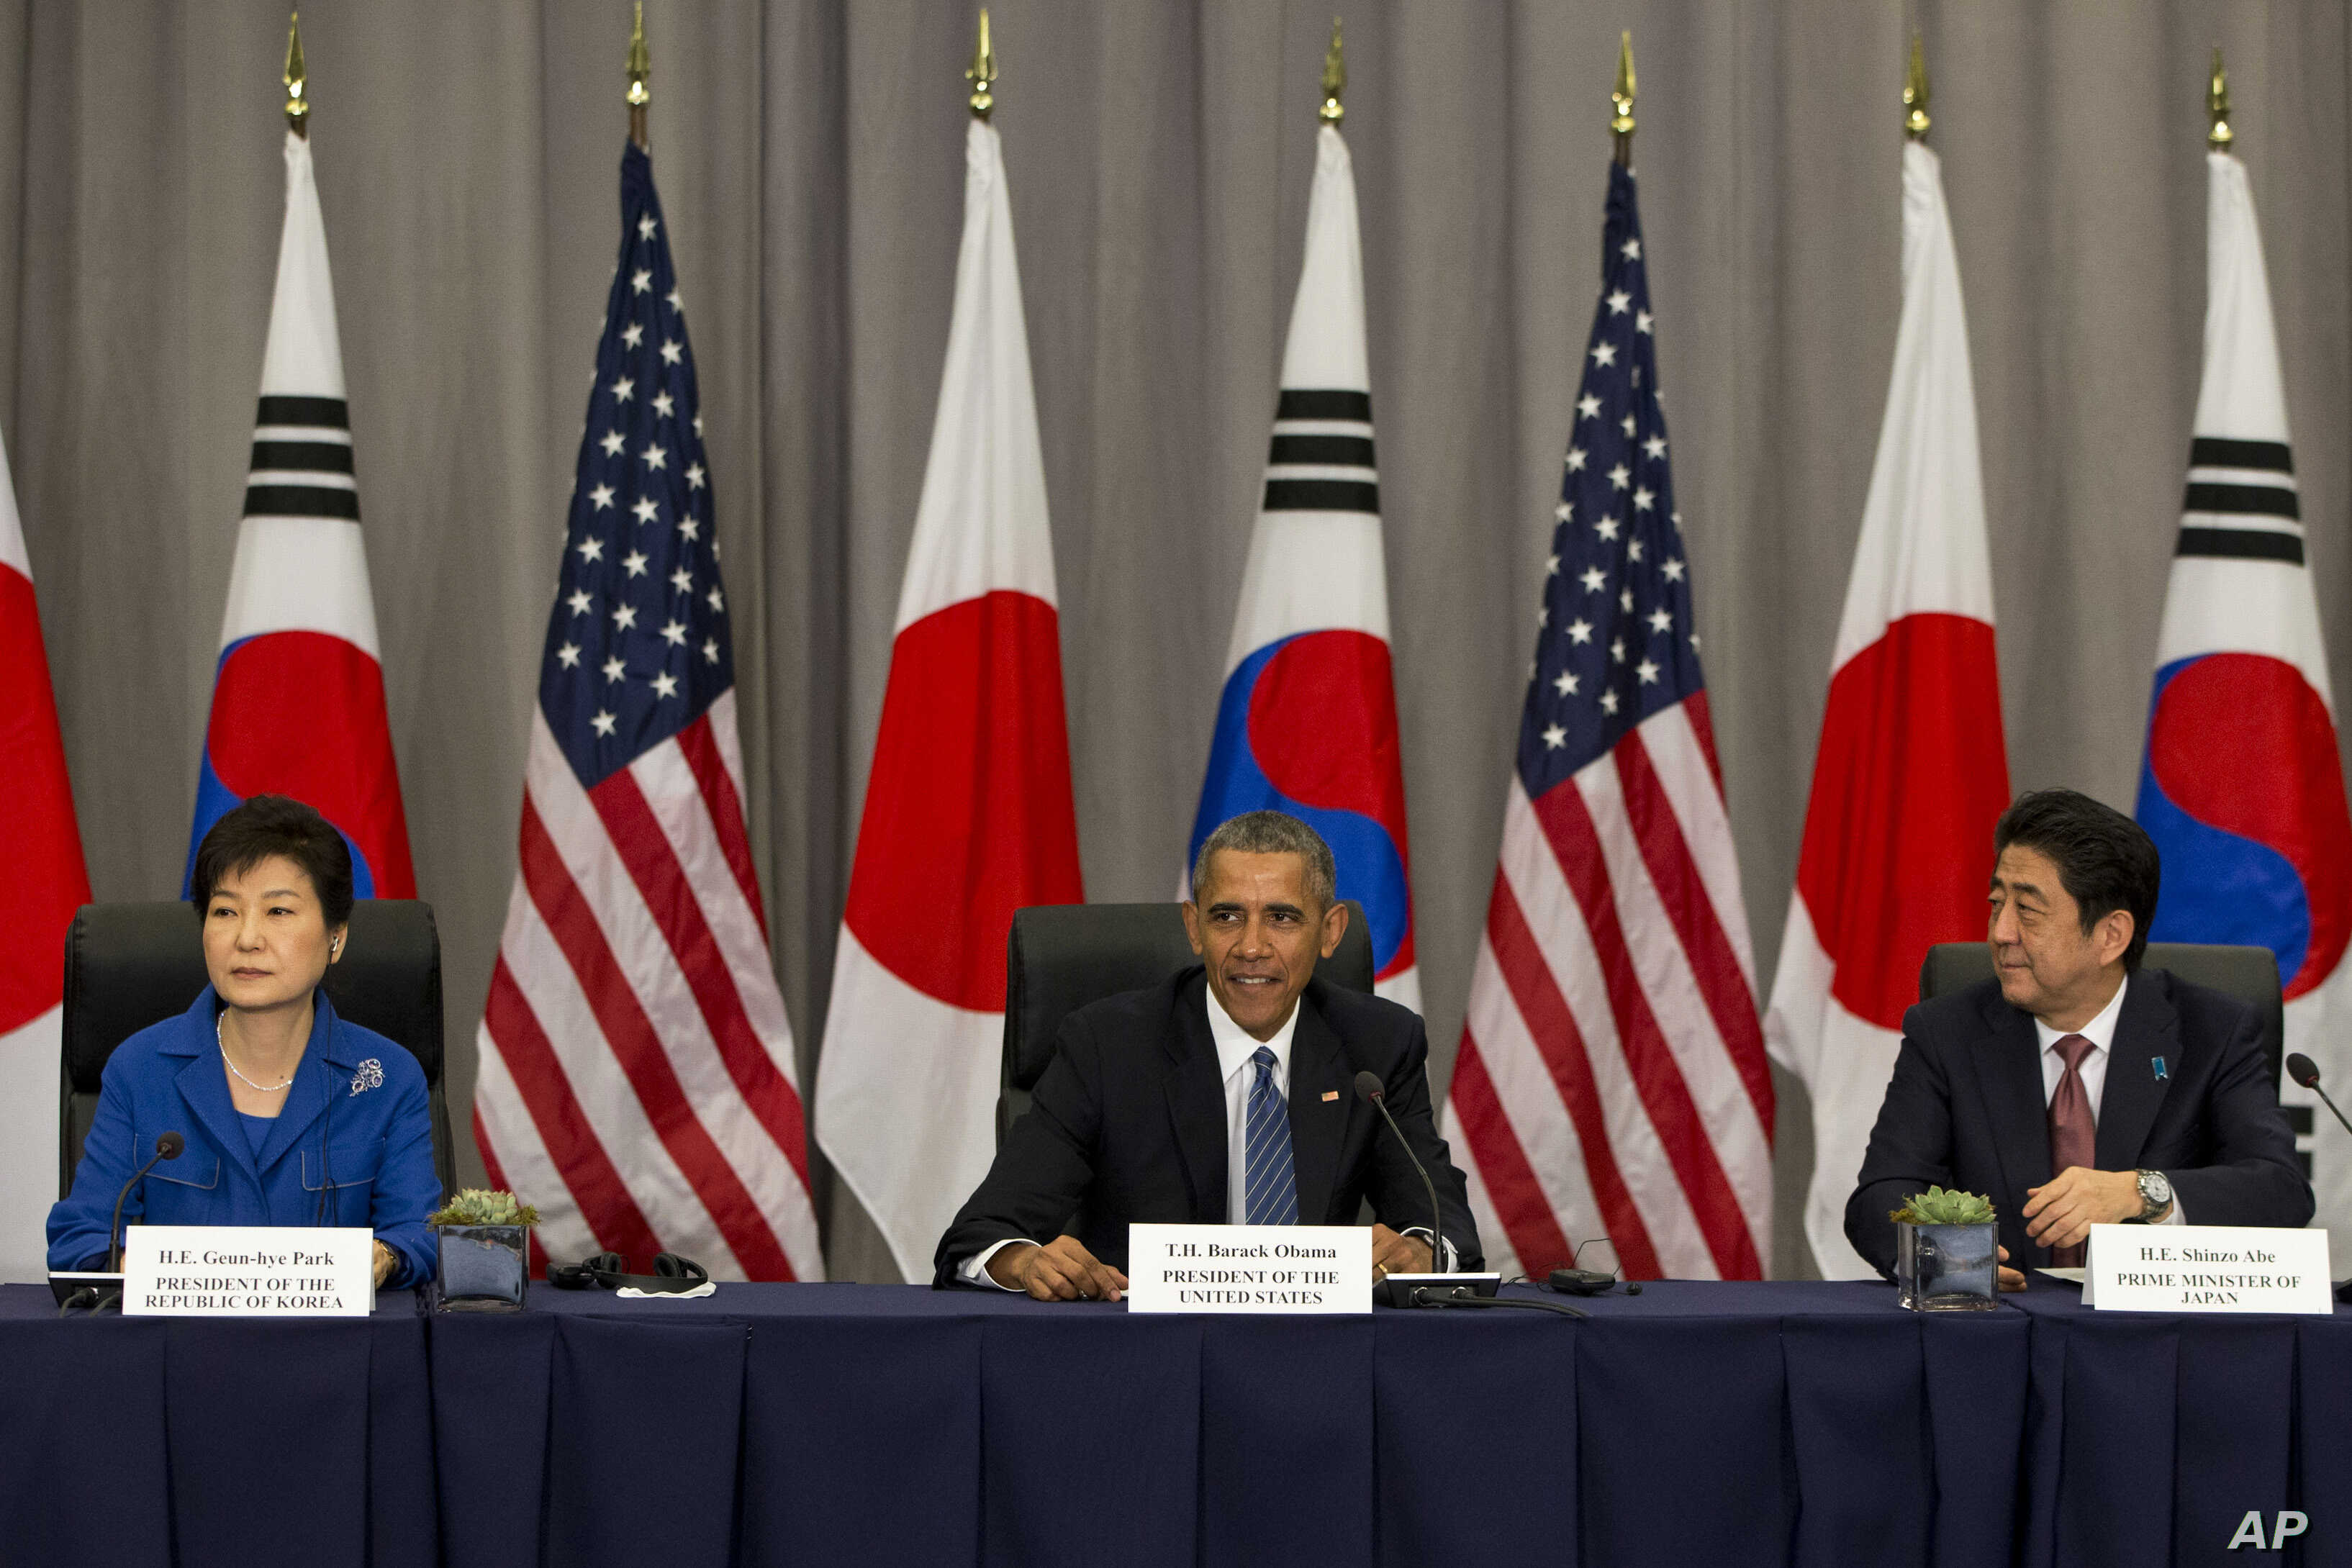 President Barack Obama meets with South Korean President Park Geun-hye, left, and Japanese Prime Minister Shinzo Abe during the Nuclear Security Summit in Washington, March 31, 2016.